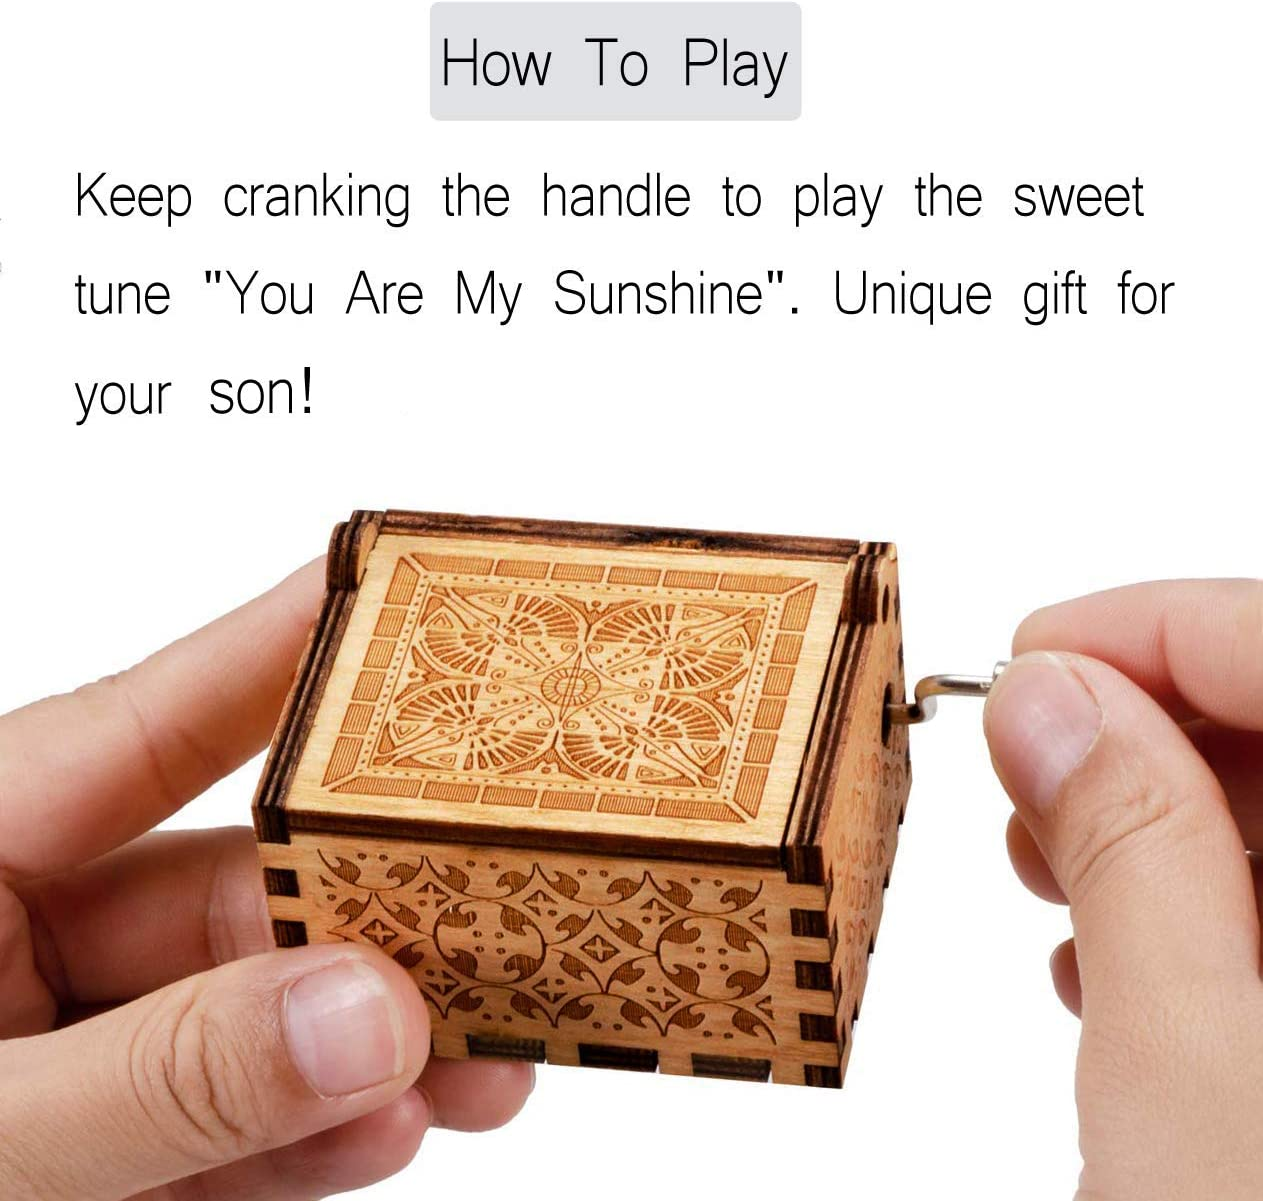 Mum to son You are My Sunshine Music Box from Mum to Son,You are My Sunshine Music Box for Son,best Gift From Mum to Son